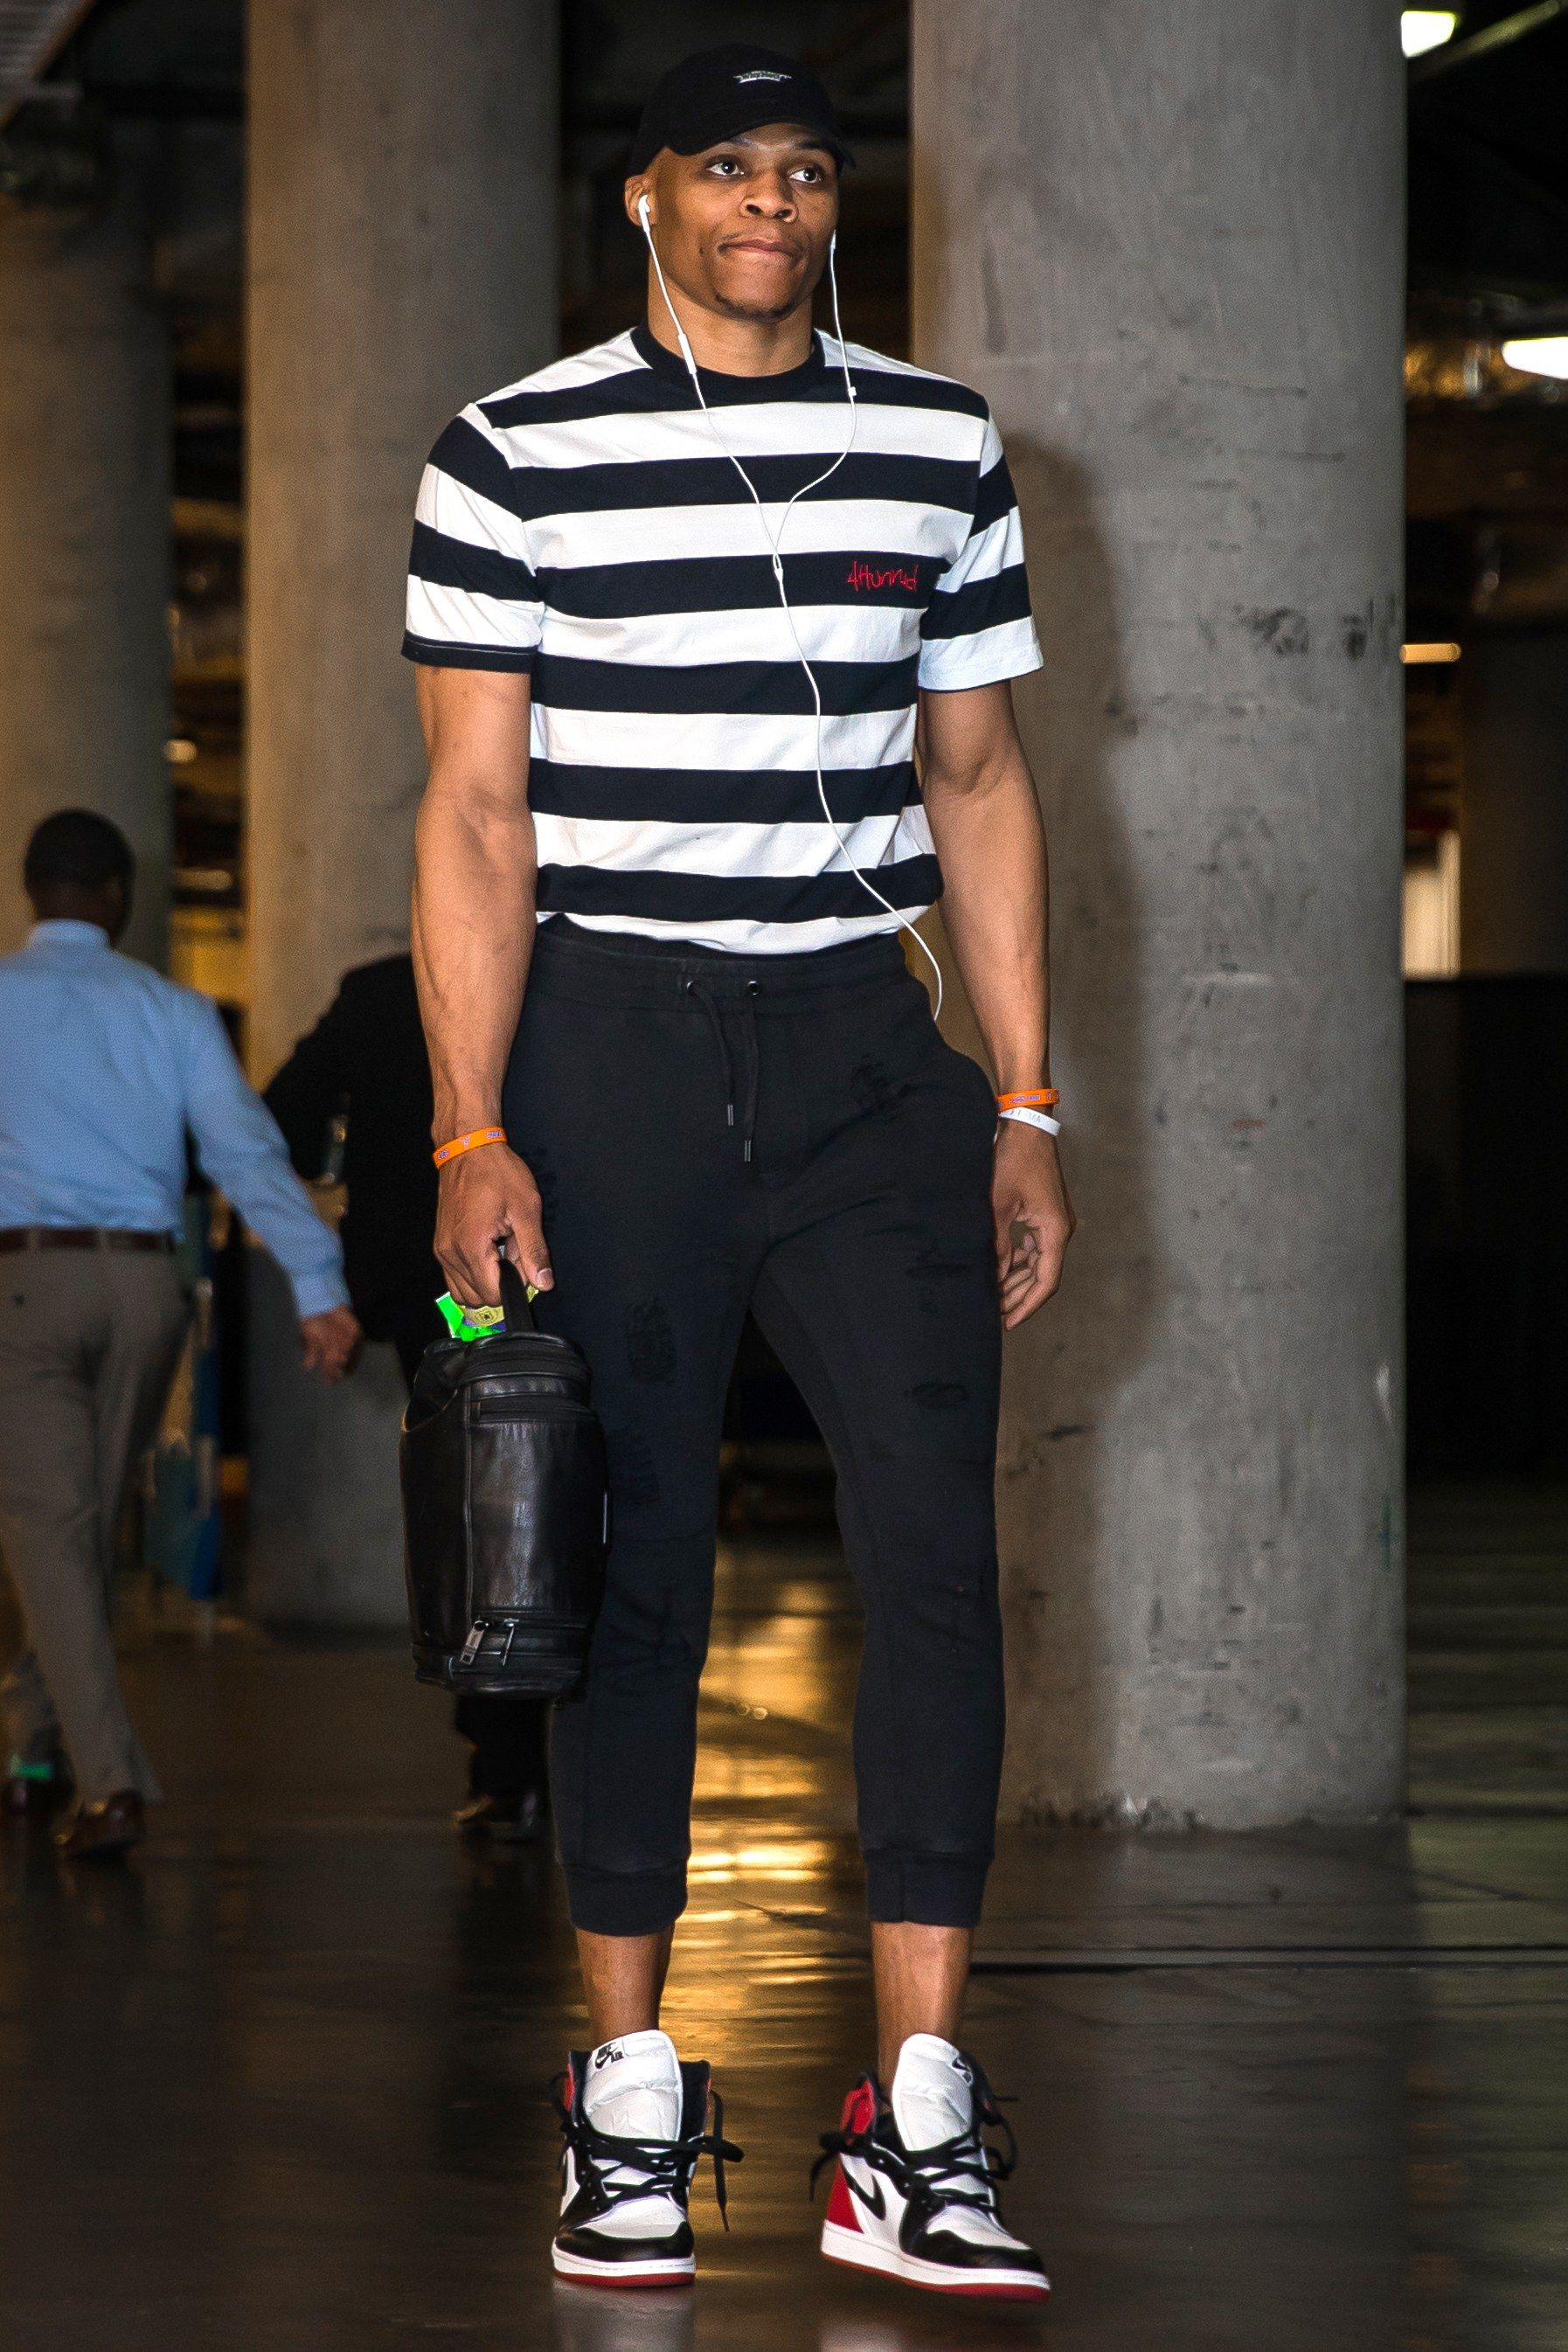 Russell Westbrook's Wildest, Weirdest, and Most Stylish Pregame Fits